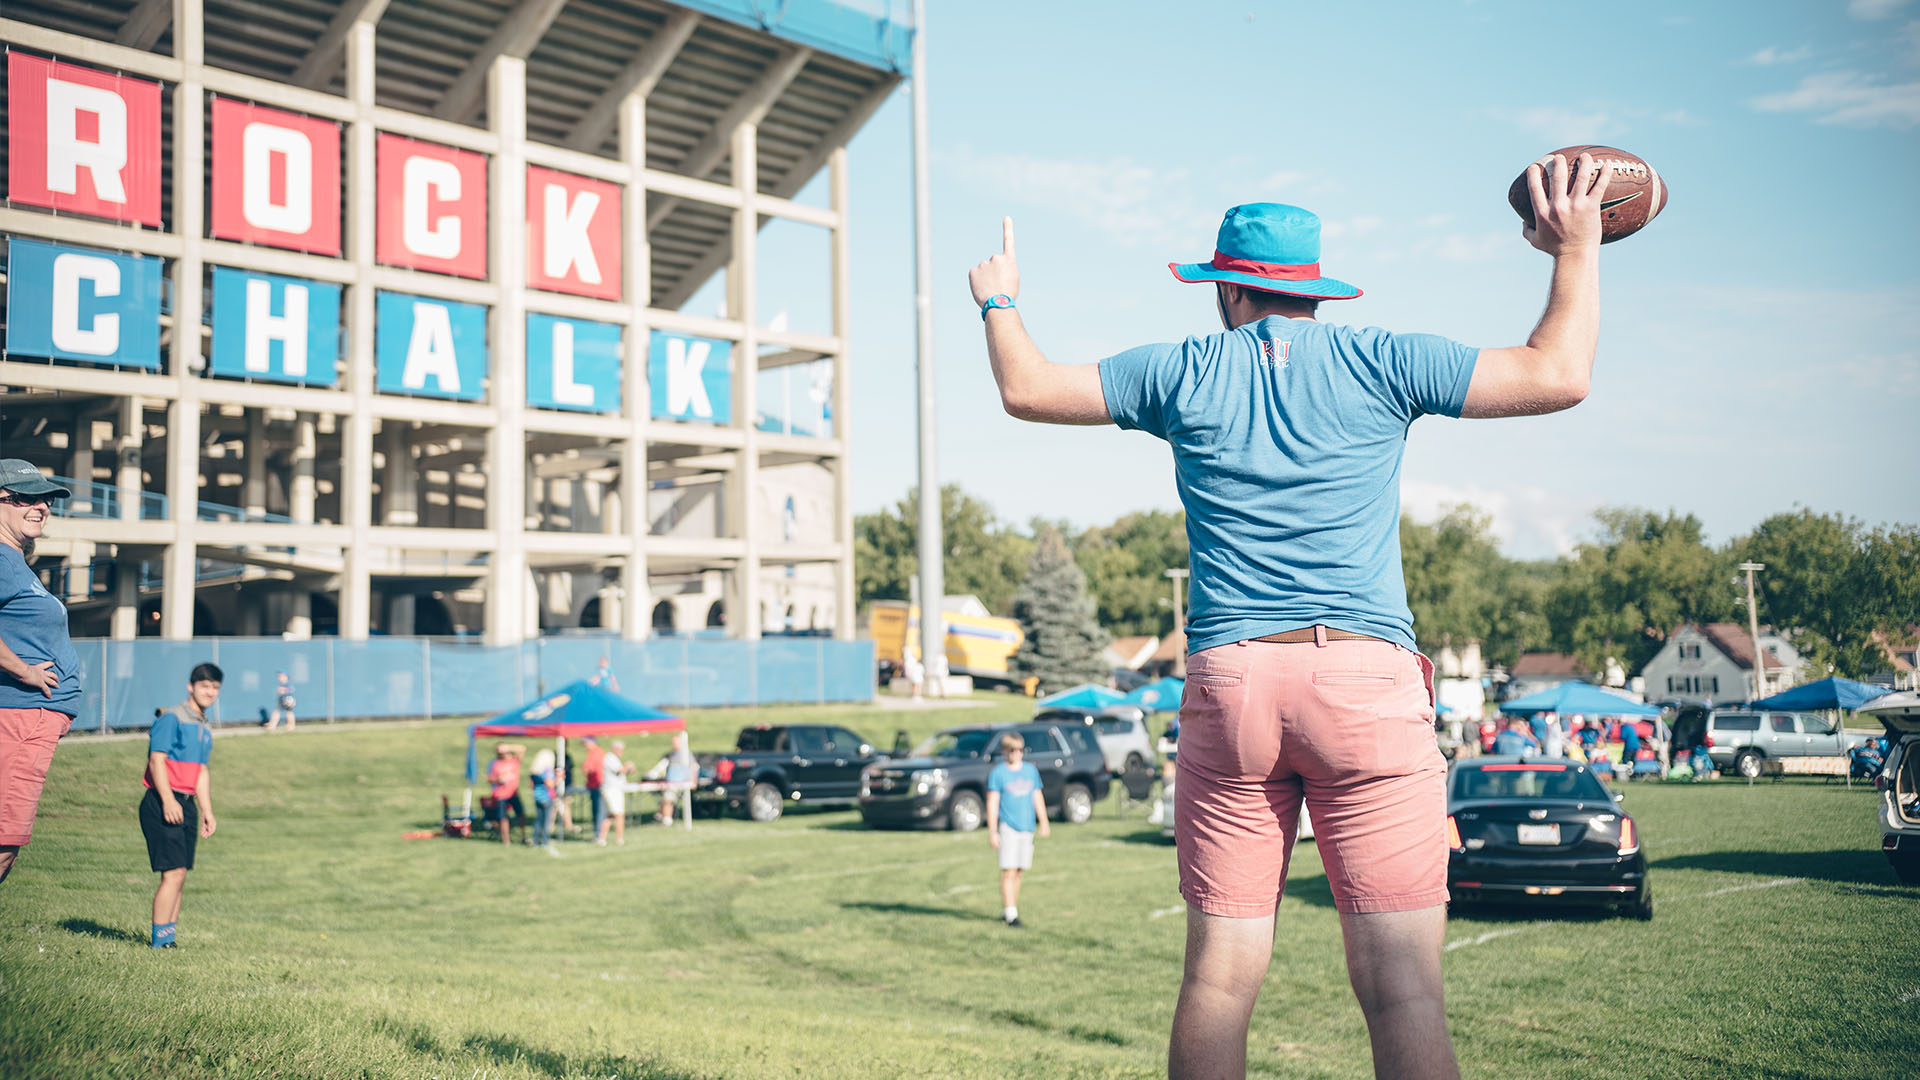 guy throws football tailgate indiana state